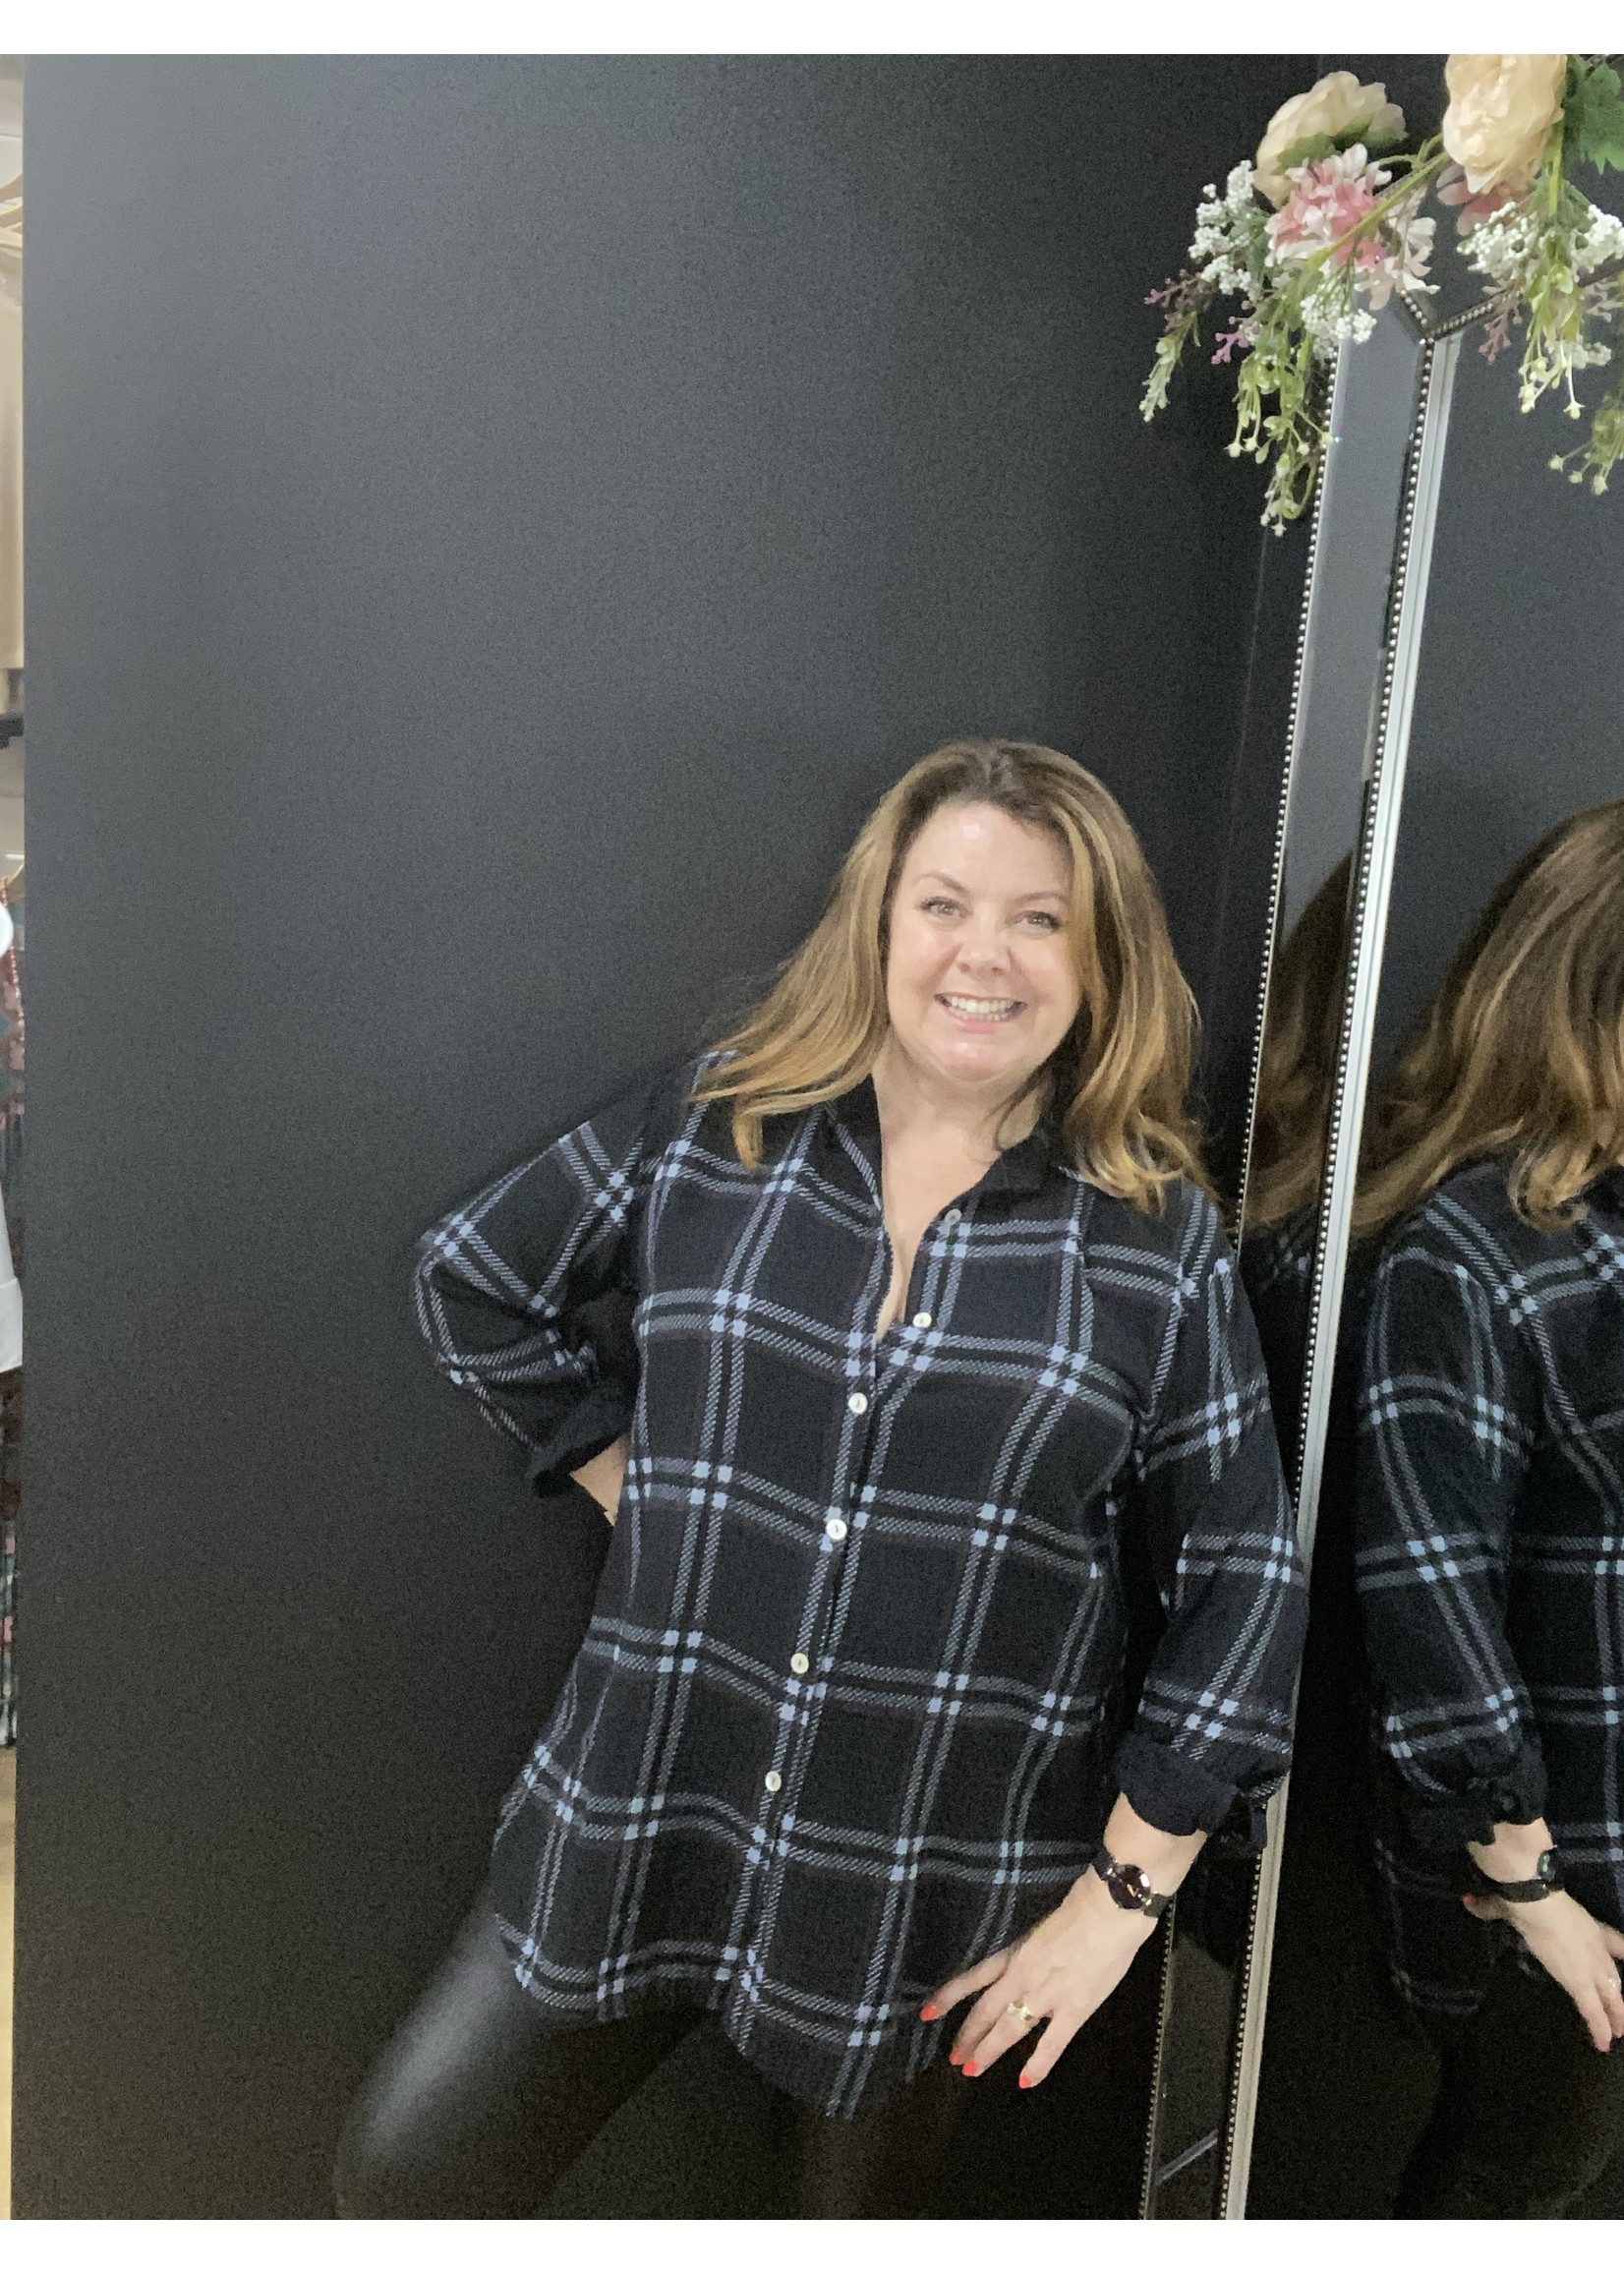 Beth check cheesecloth shirt